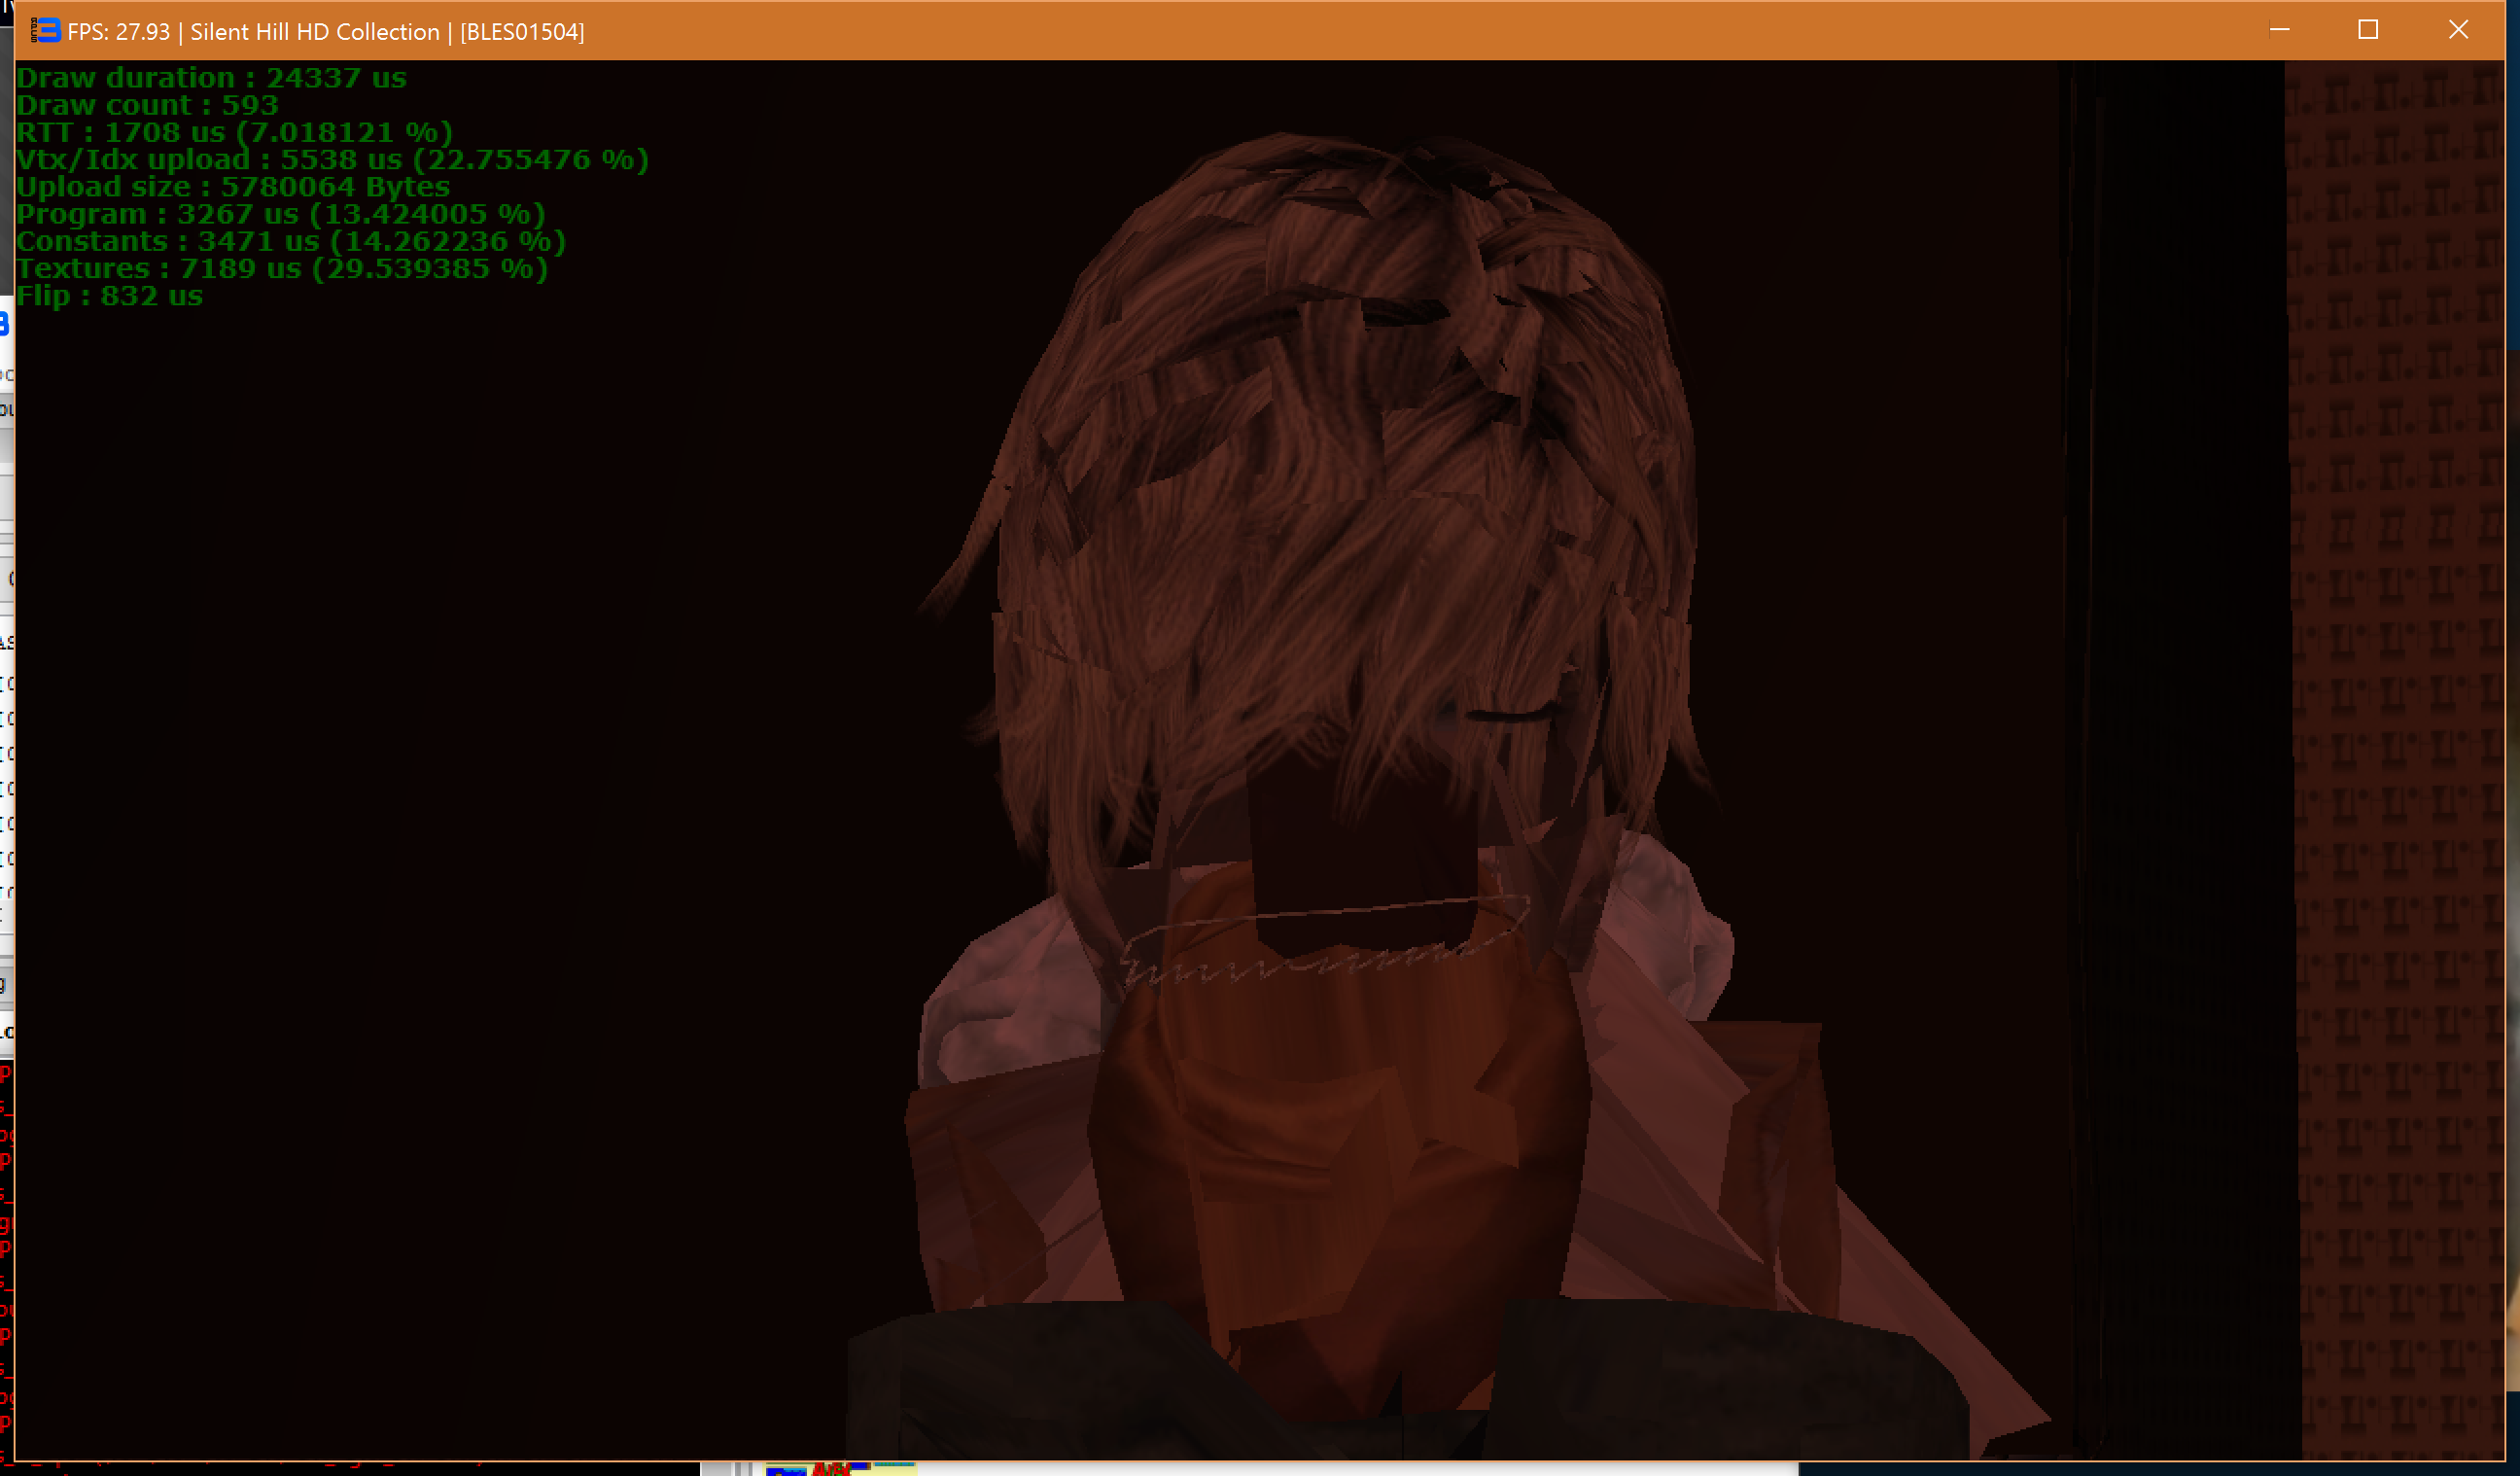 Silent Hill HD Collection Running in RPCS3 : emulation